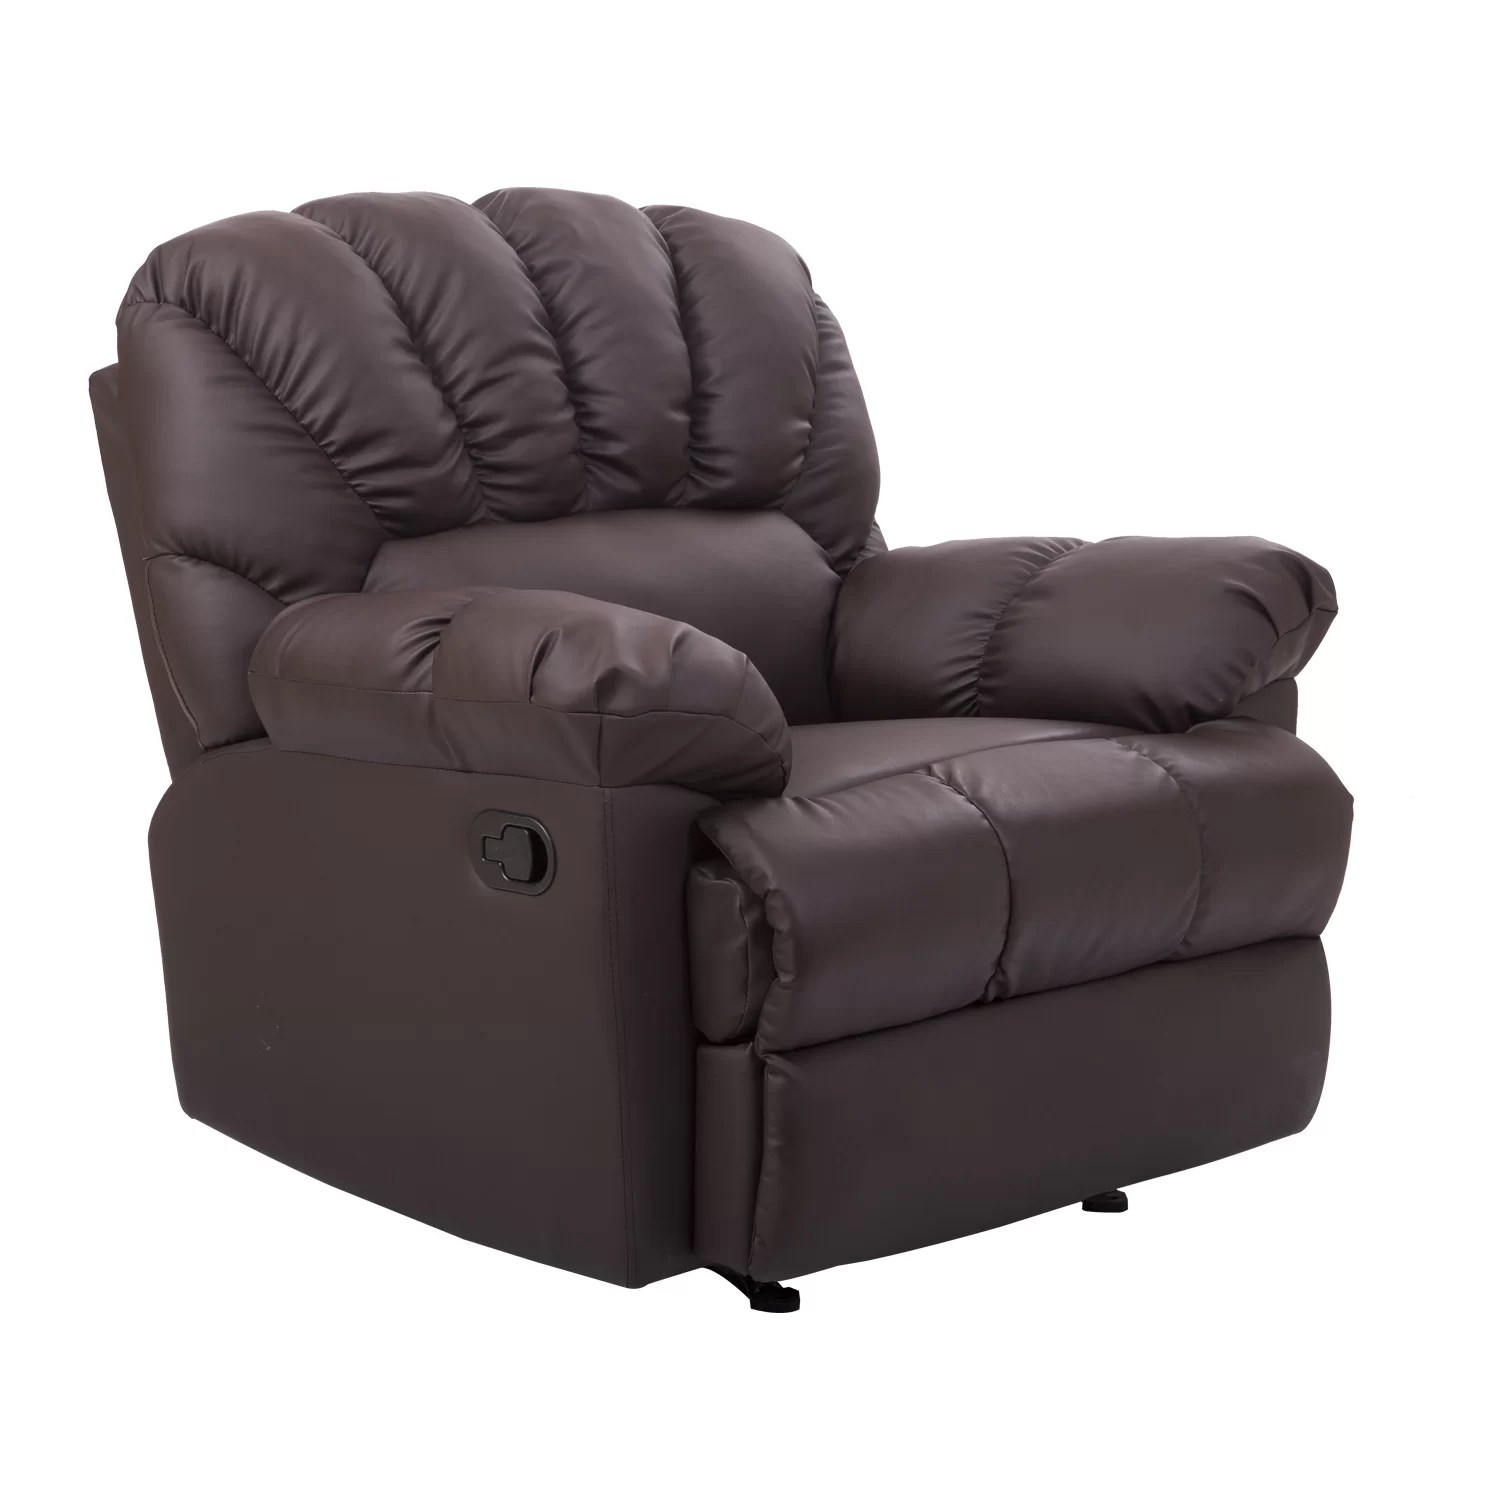 Reclining Rocking Chair Homcom Rocking Sofa Recliner And Reviews Wayfair